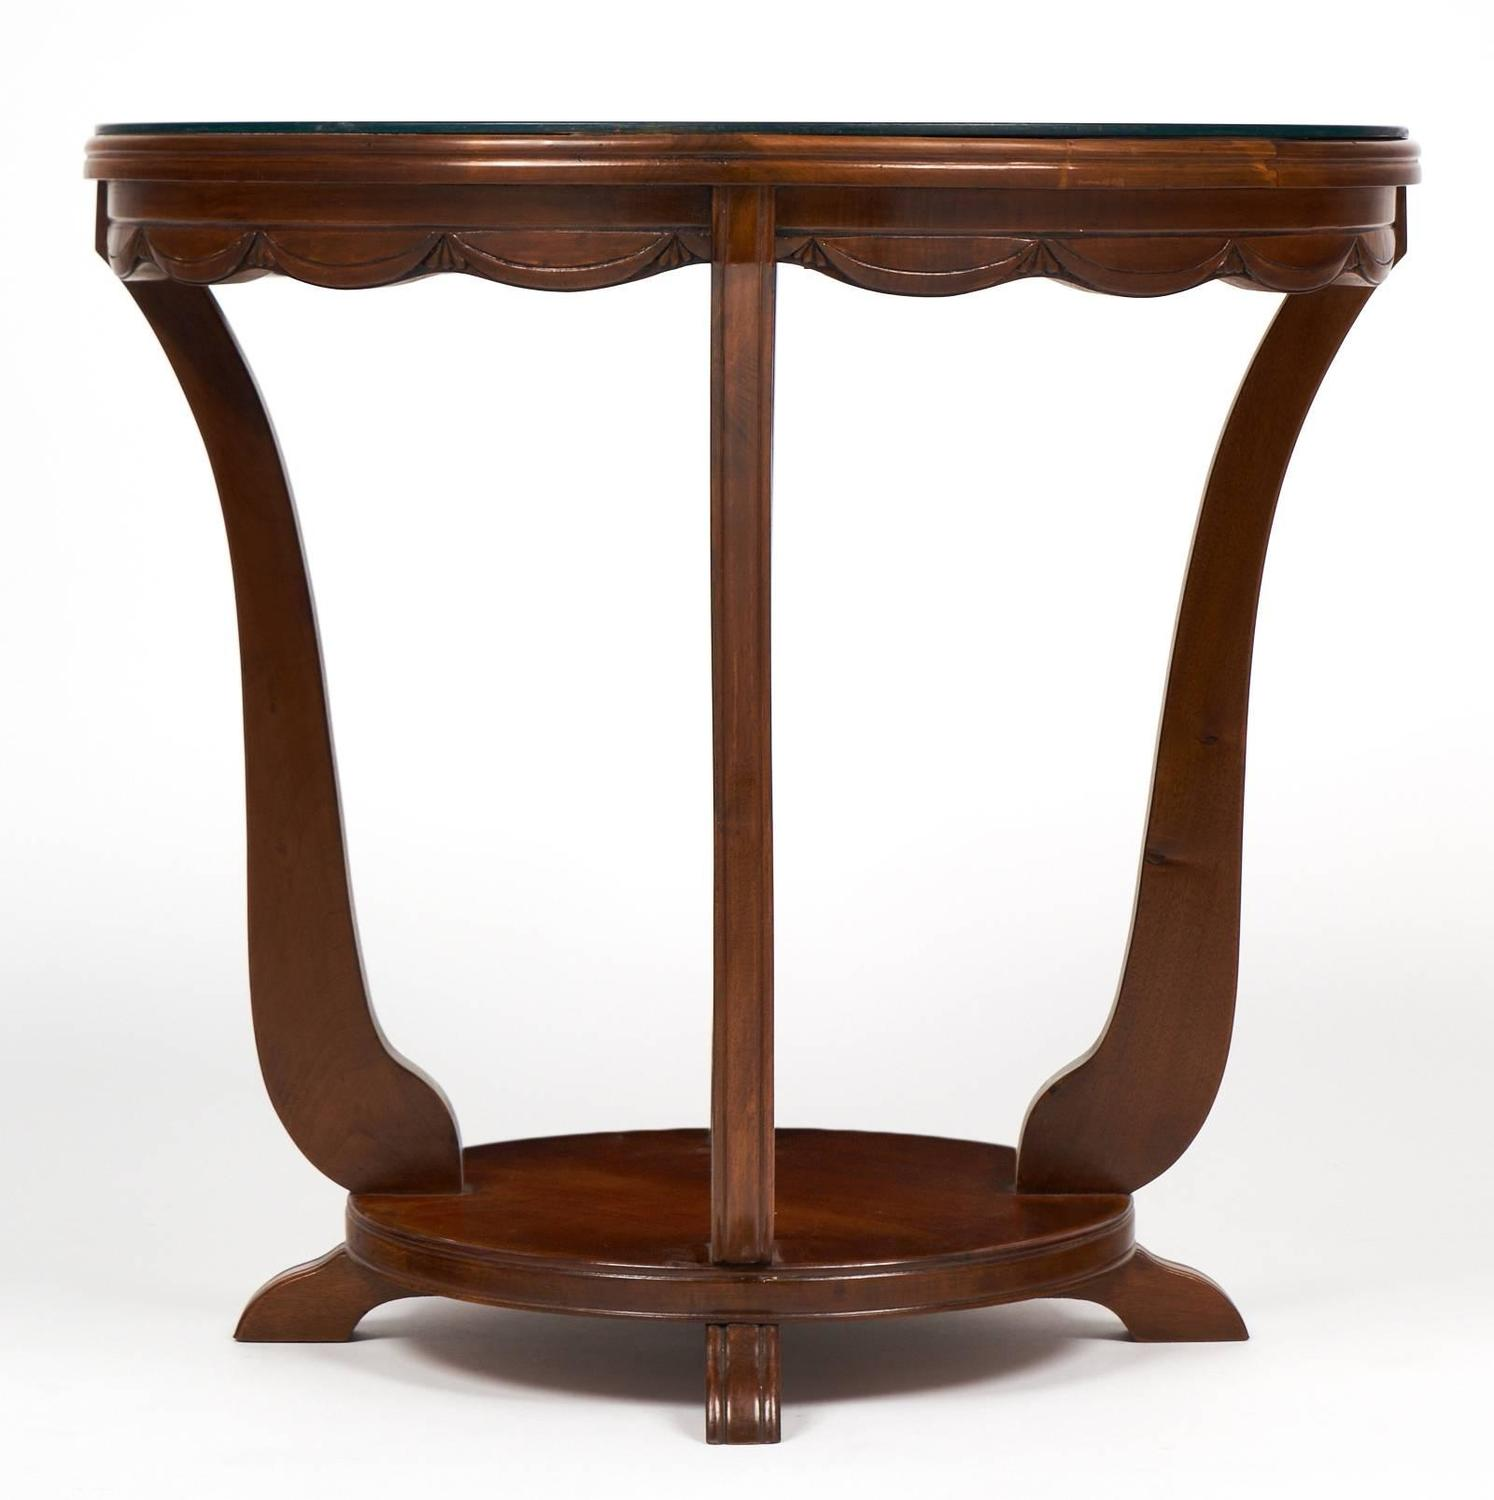 French art deco period garlanded gueridon for sale at 1stdibs for Art deco period